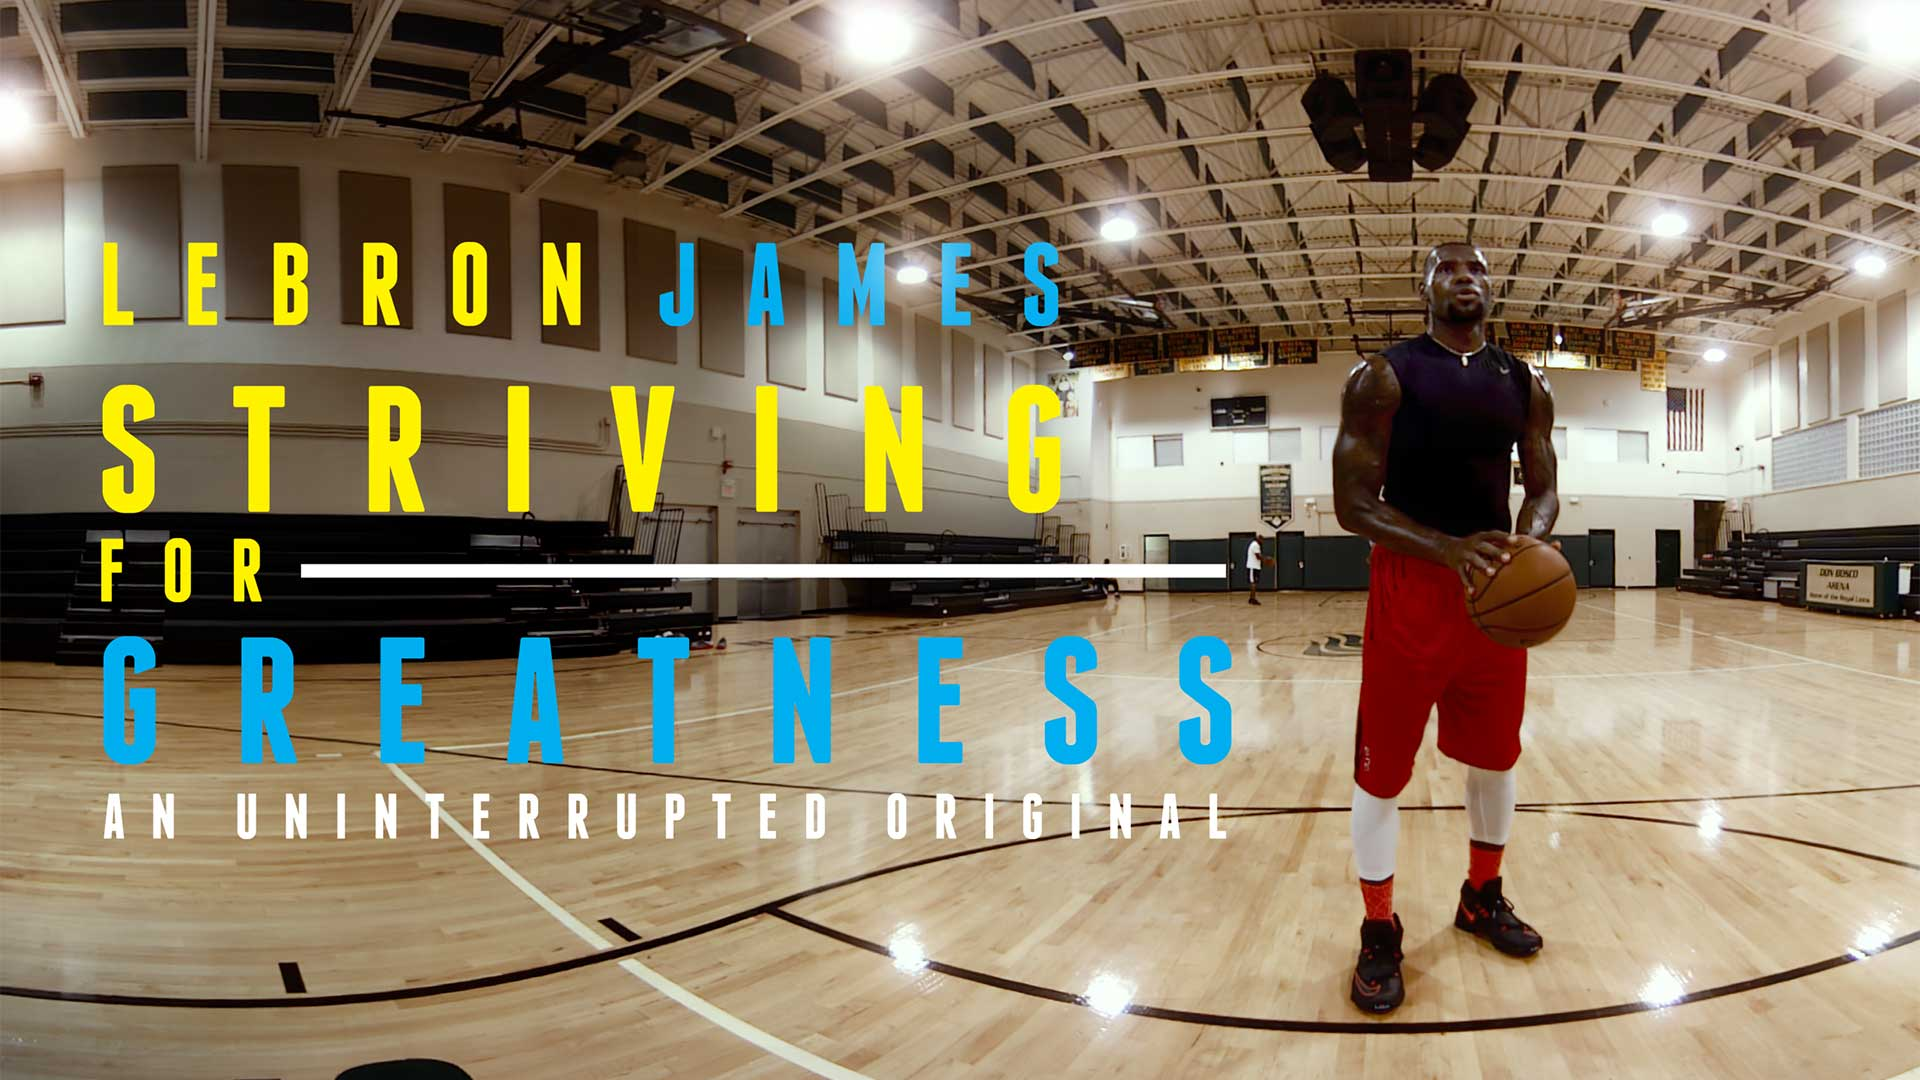 Lebron James: Striving for Greatness